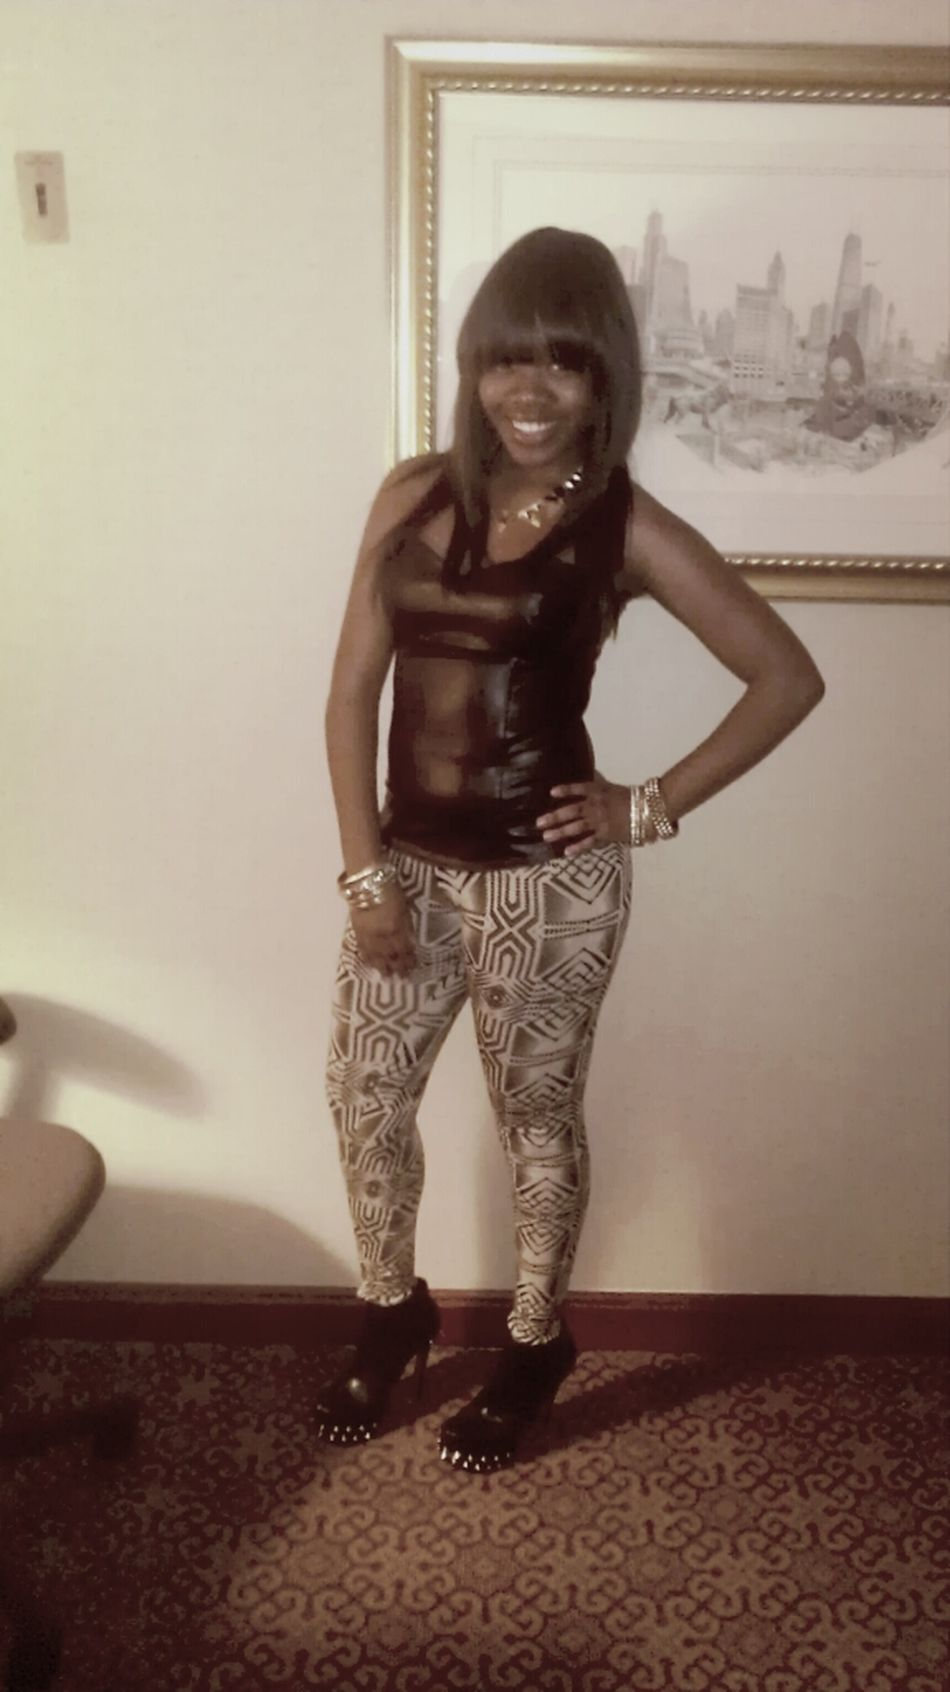 On New Years. Hotel Kickback at the Hilton was cracking!!!!